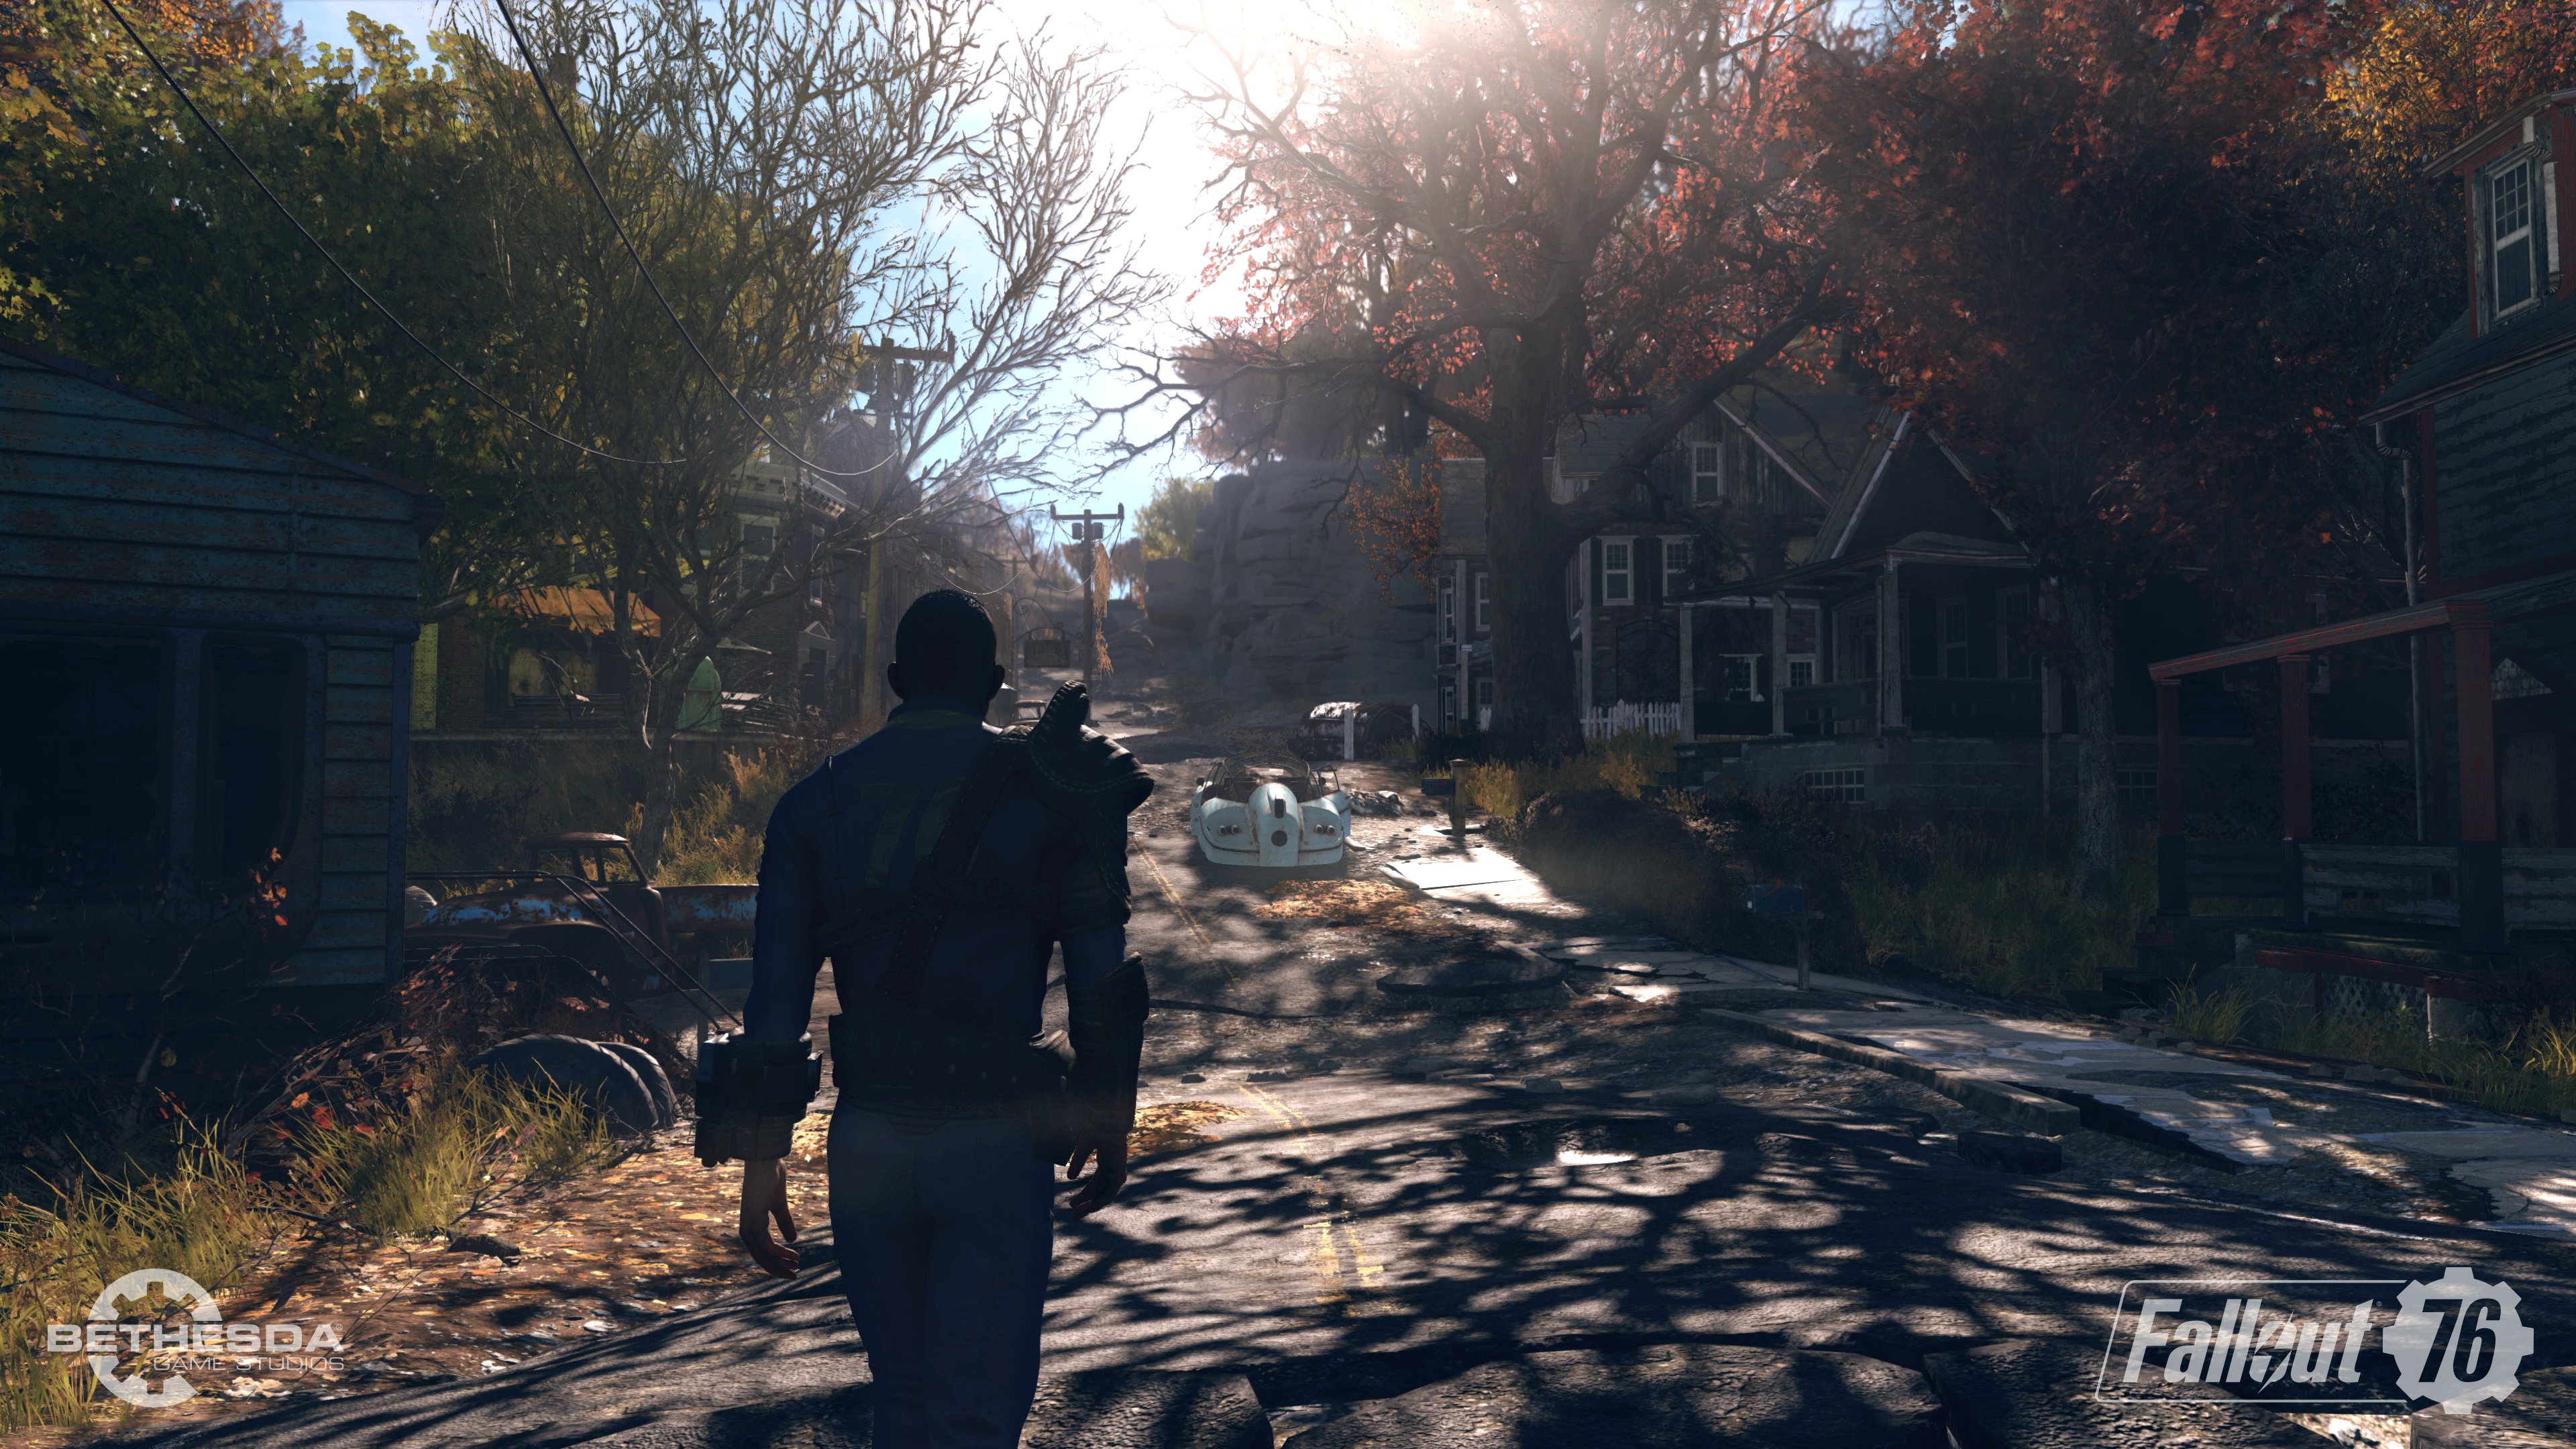 What we know about the Fallout 76 beta how to signup and its release date